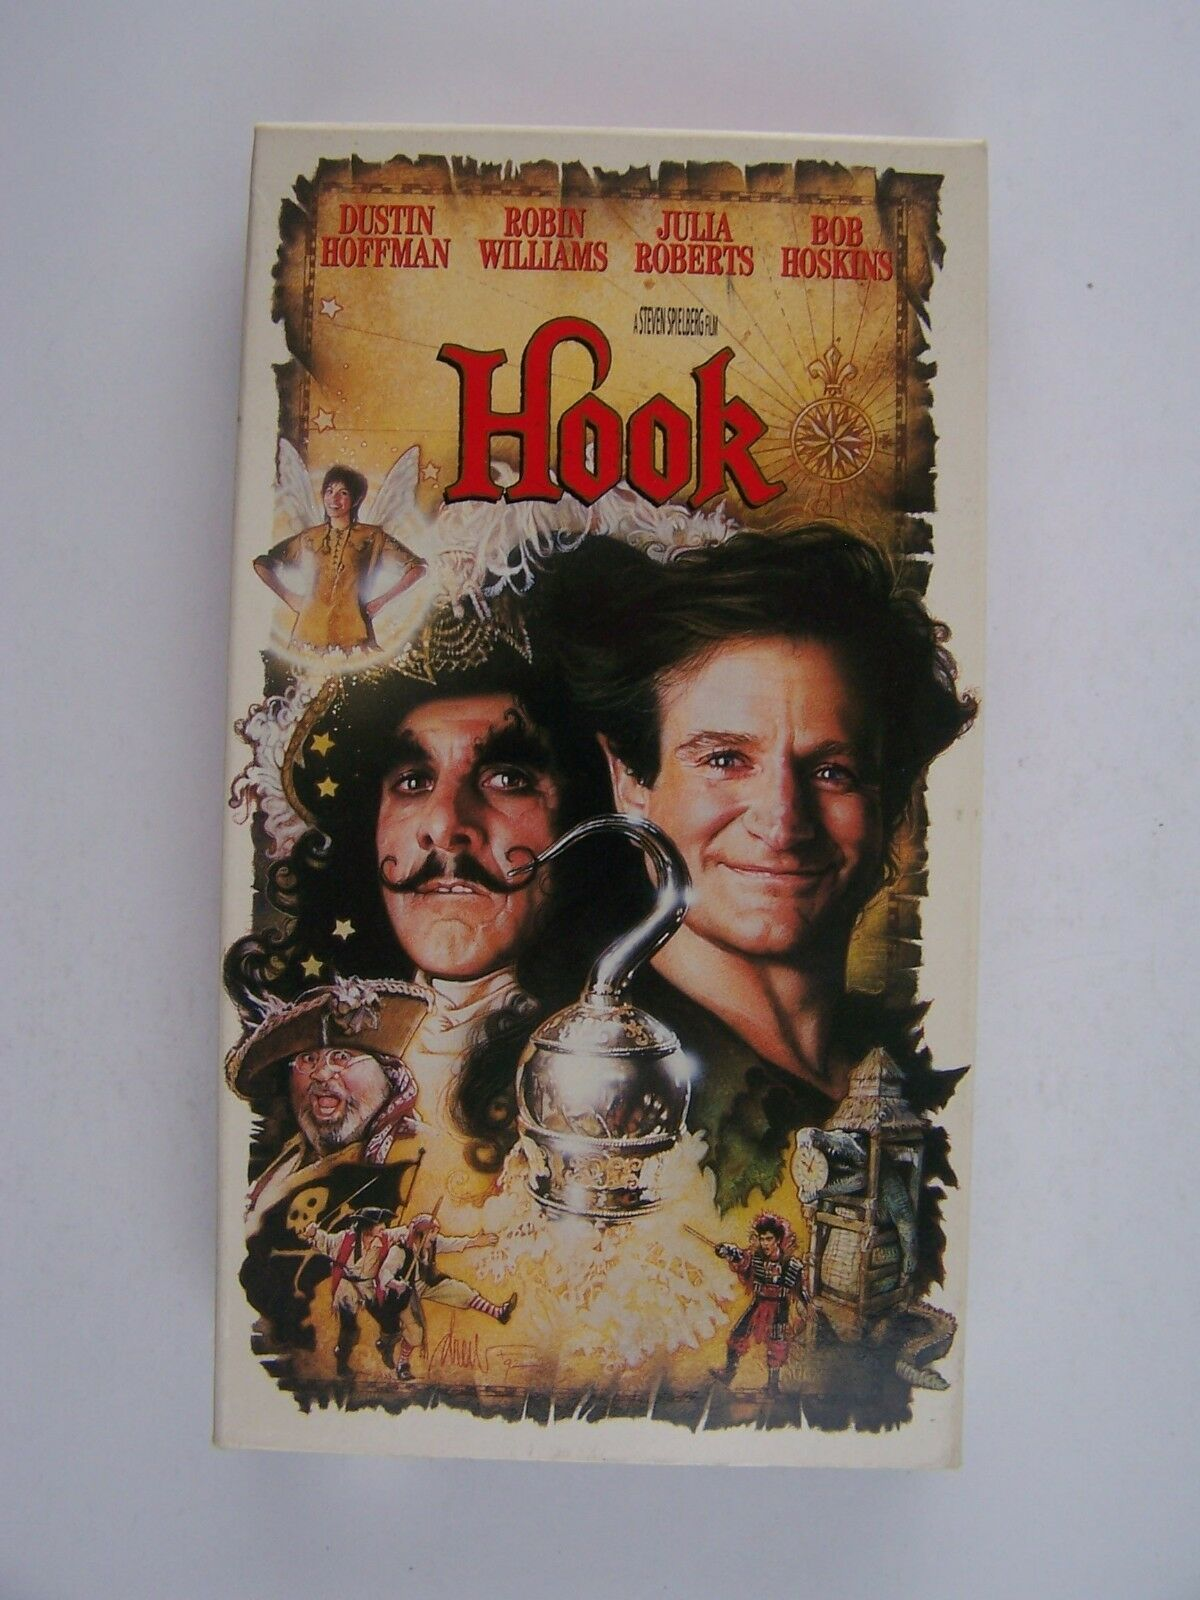 Hook VHS Dustin Hoffman, Robin Williams, Julia Roberts